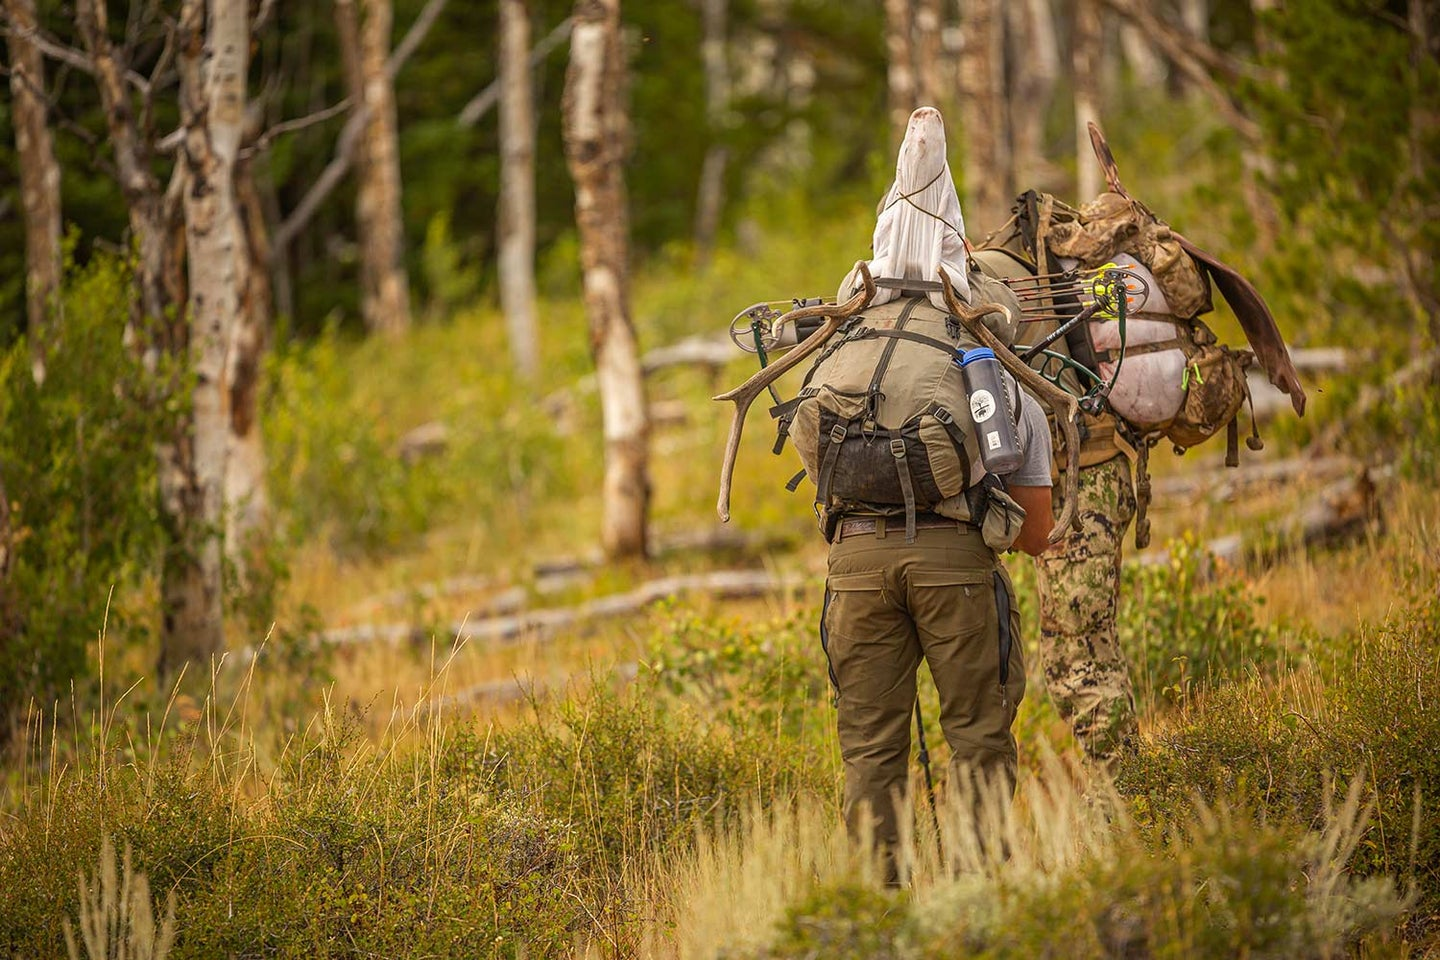 Hunting guides in a forest.